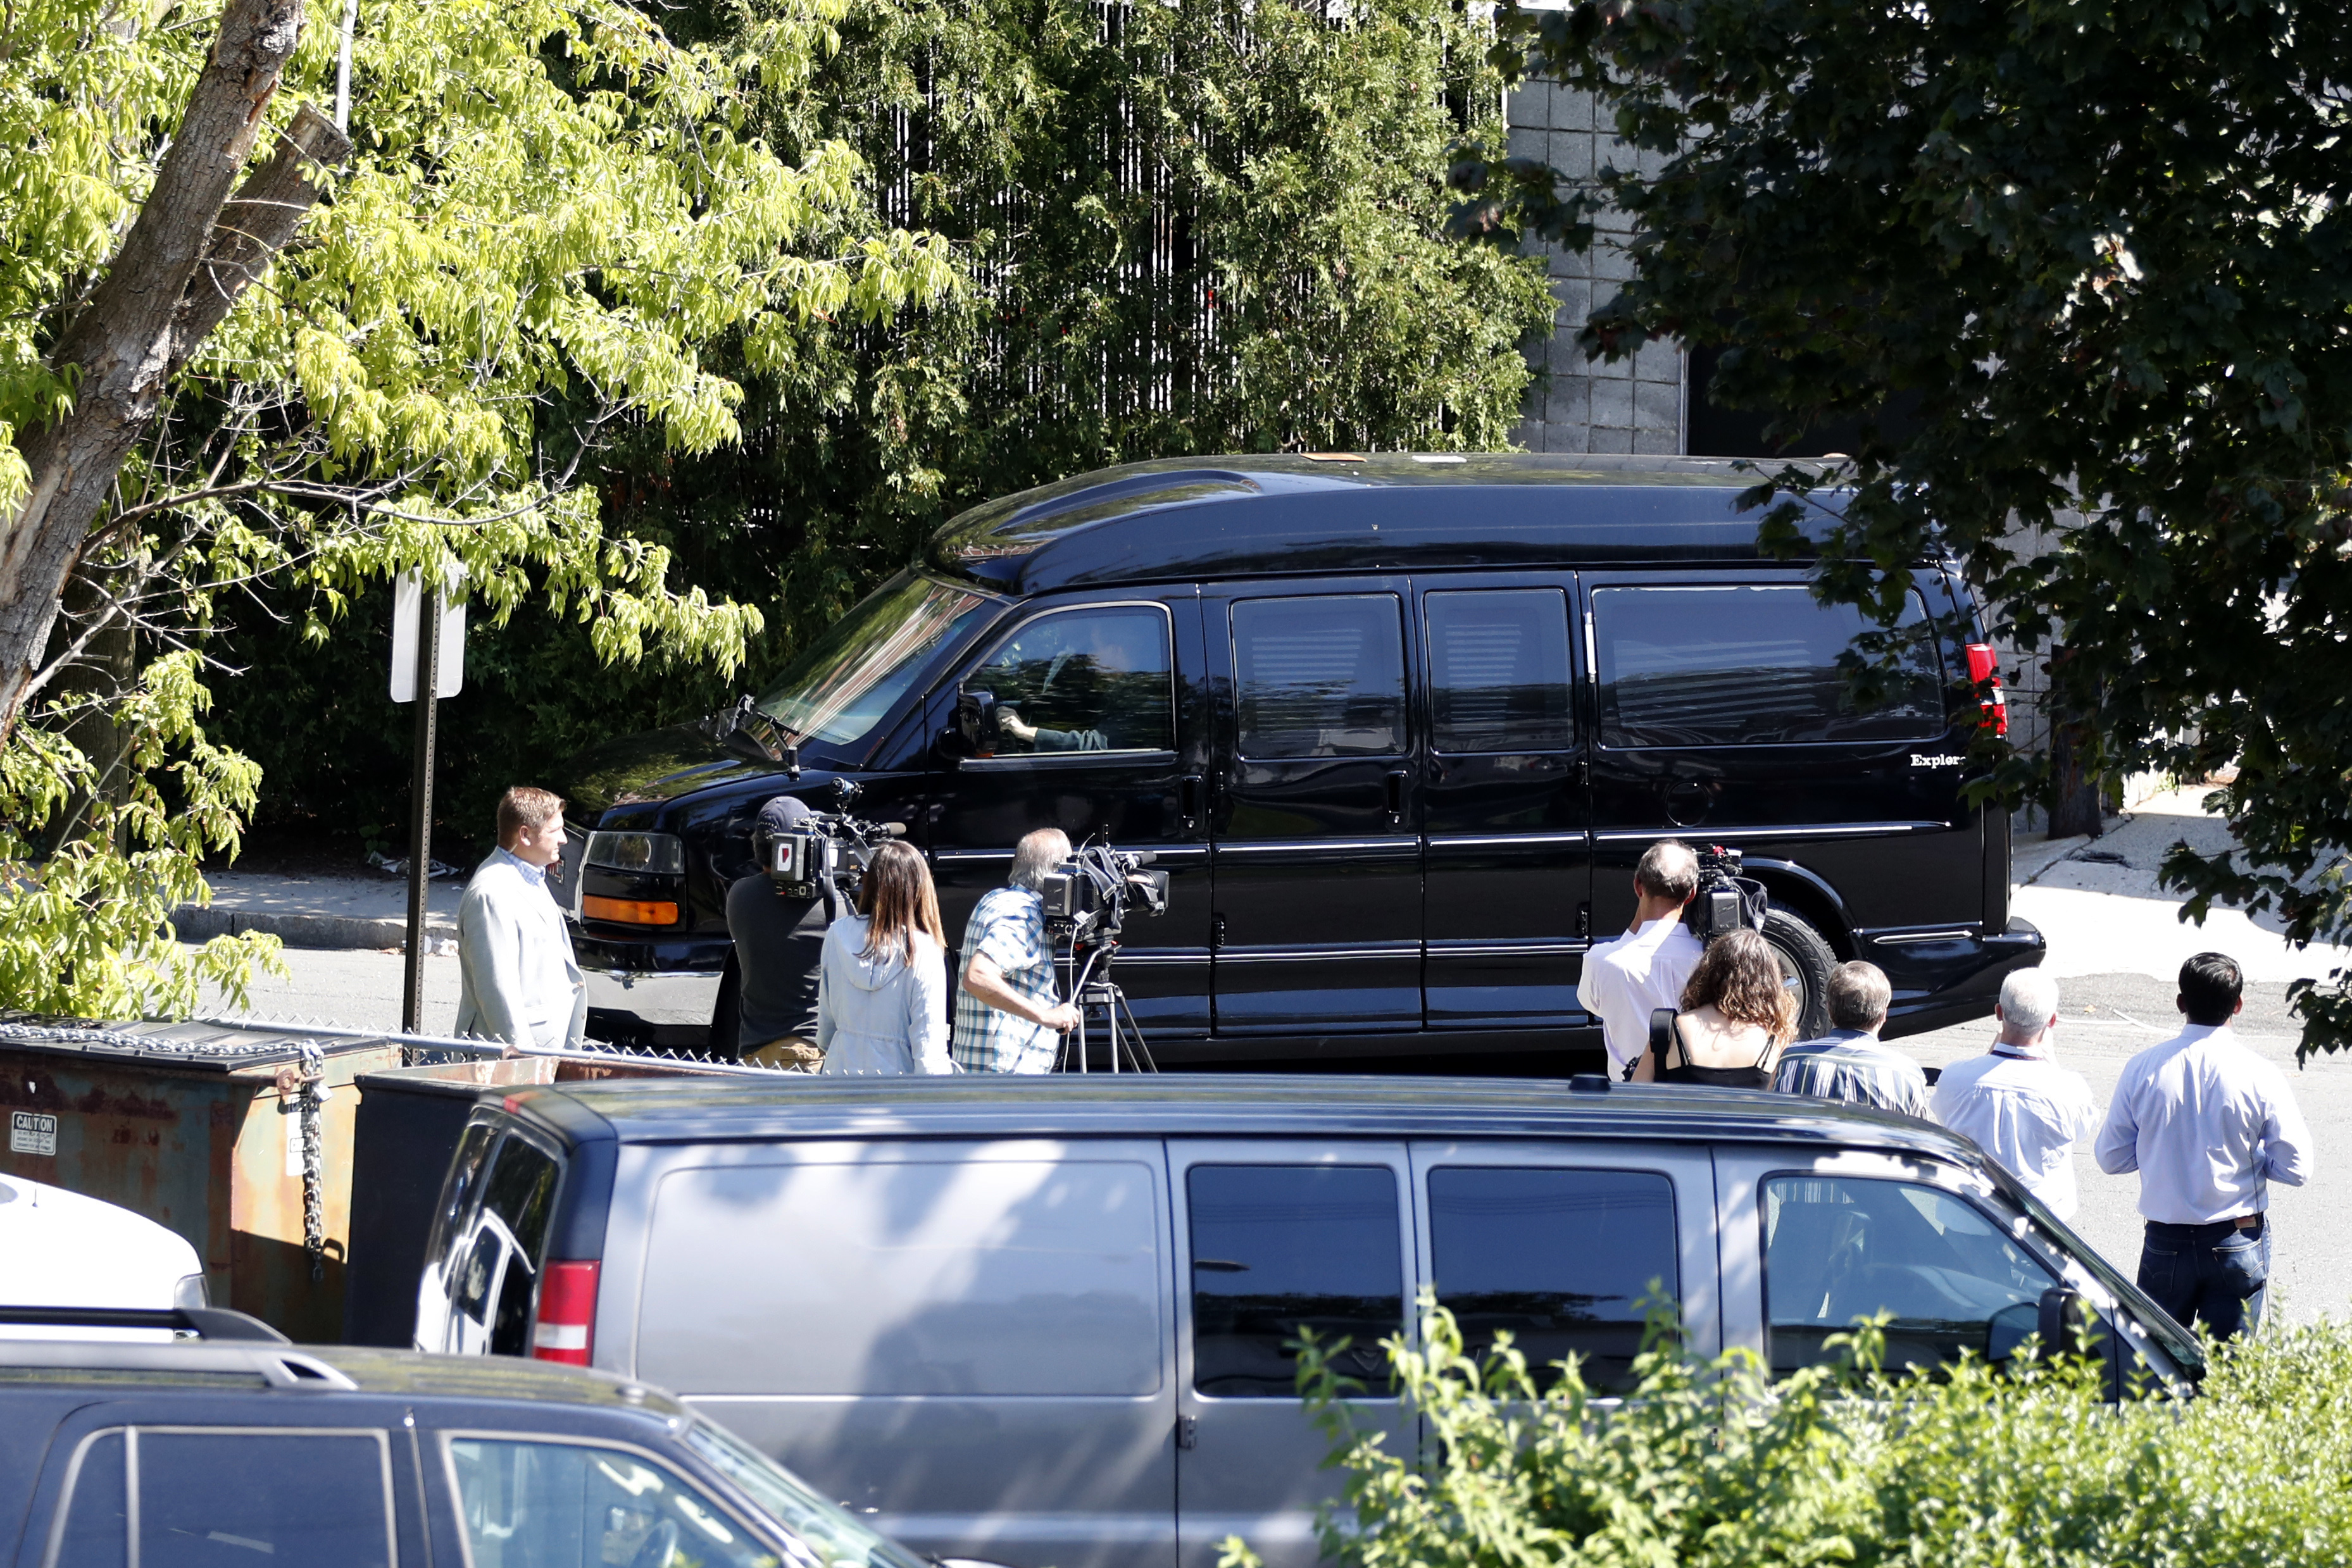 Reporters watch as Democratic presidential candidate Hillary Clinton's van leaves a FBI facility in White Plains, New York, after she received her first classified intelligence briefing as a leading presidential contender, Aug. 27, 2016.